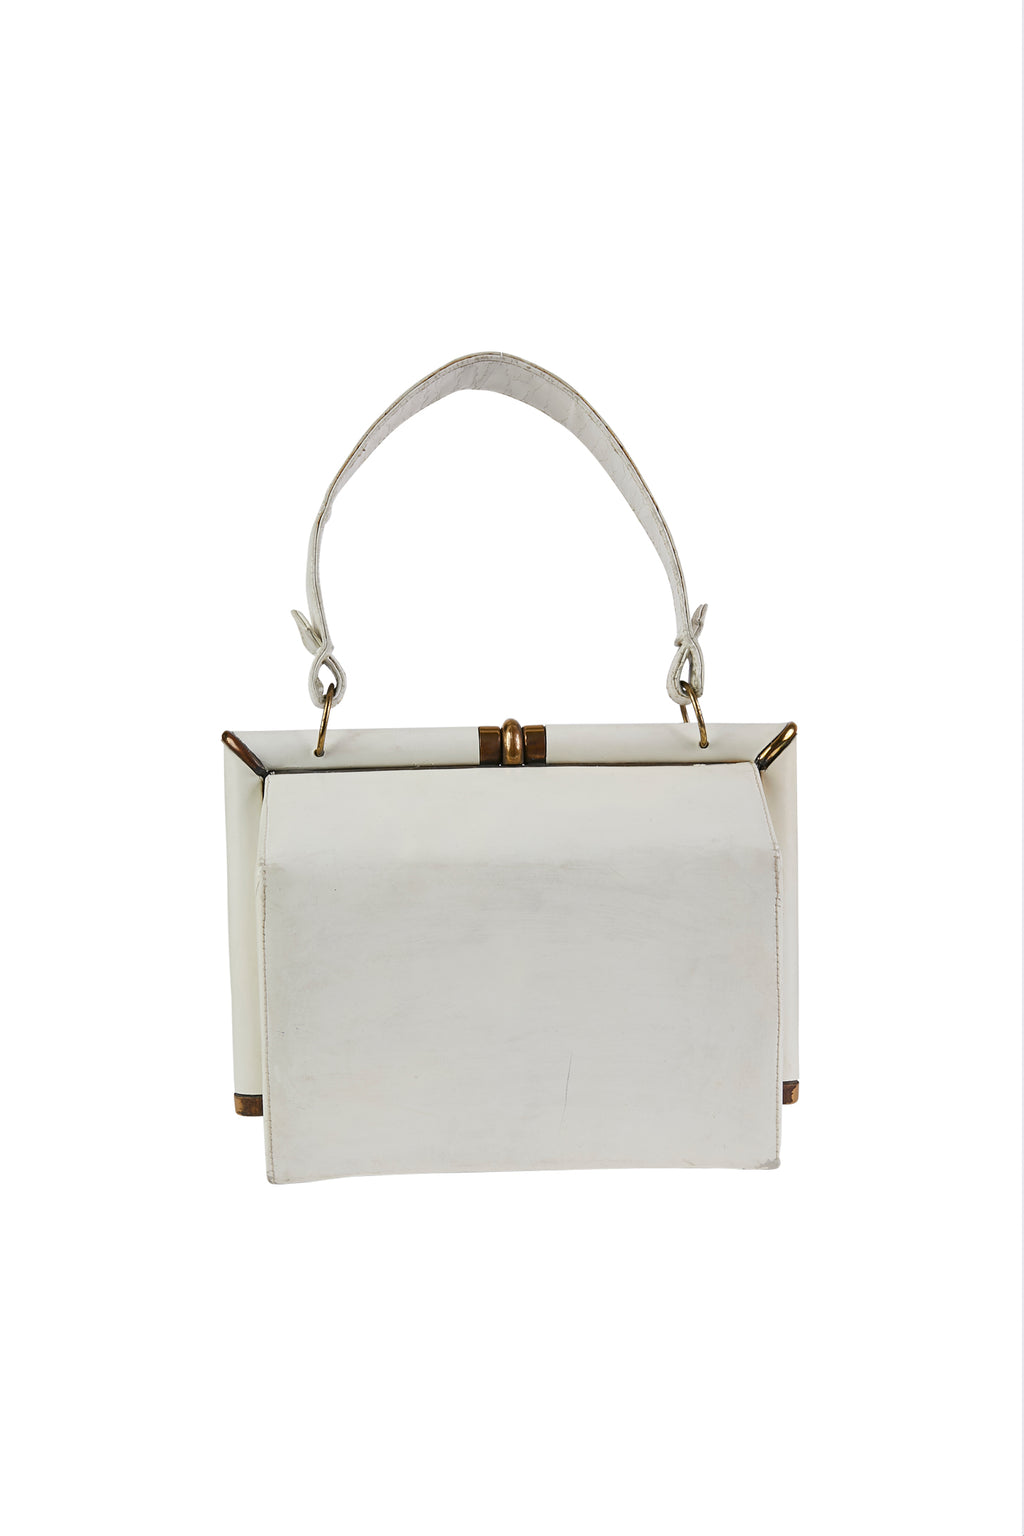 Vintage Off-White Leather Bag